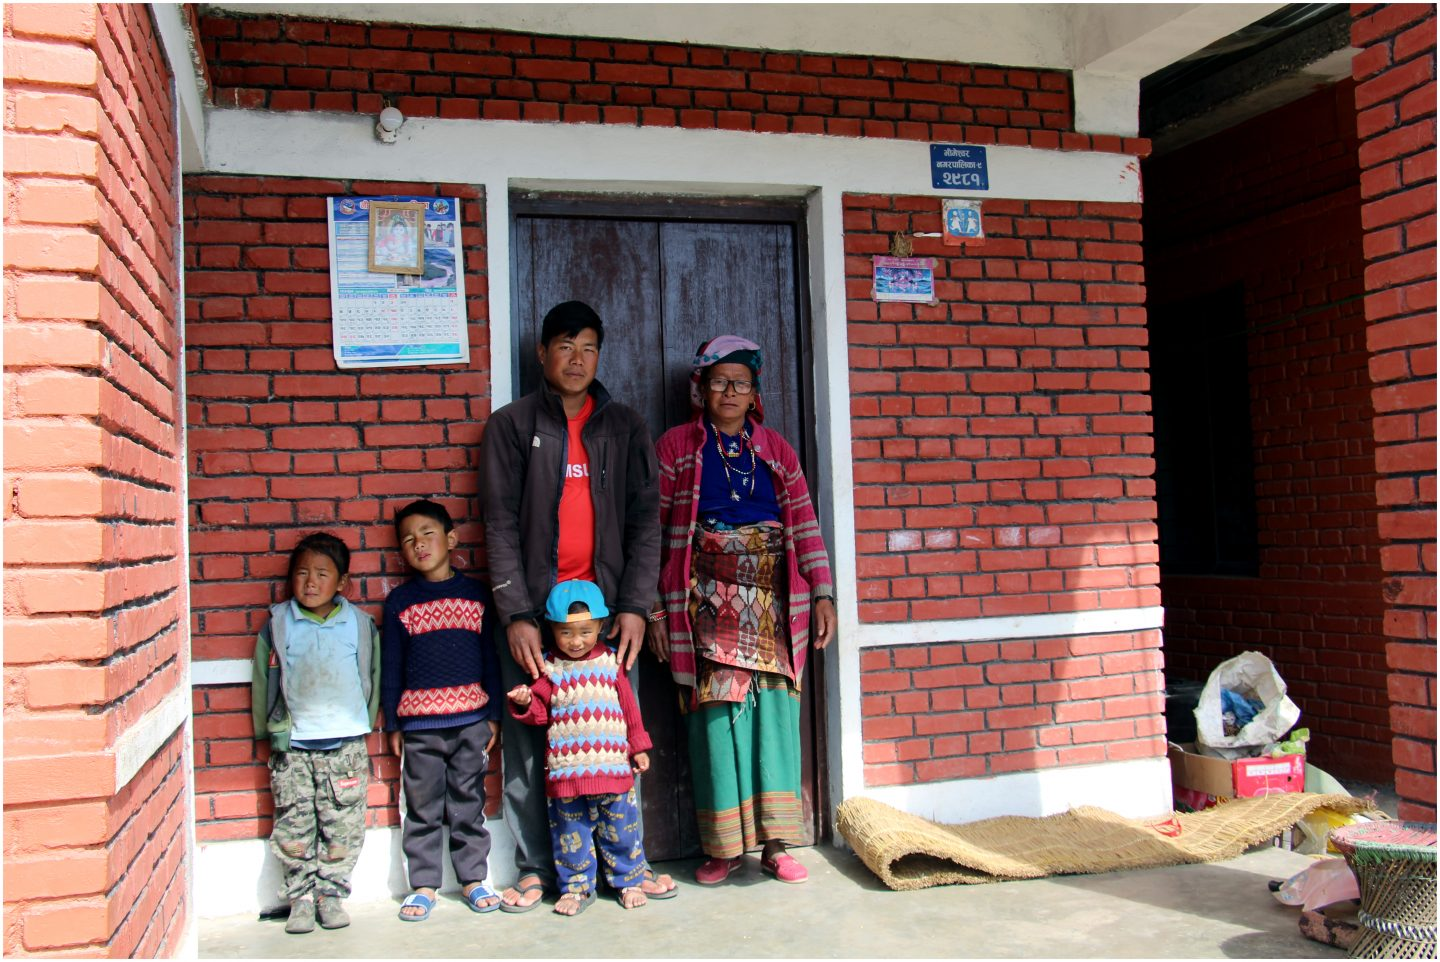 Nepal-ERP-Dolakha-Dorje Tamang with some family outside his house-1